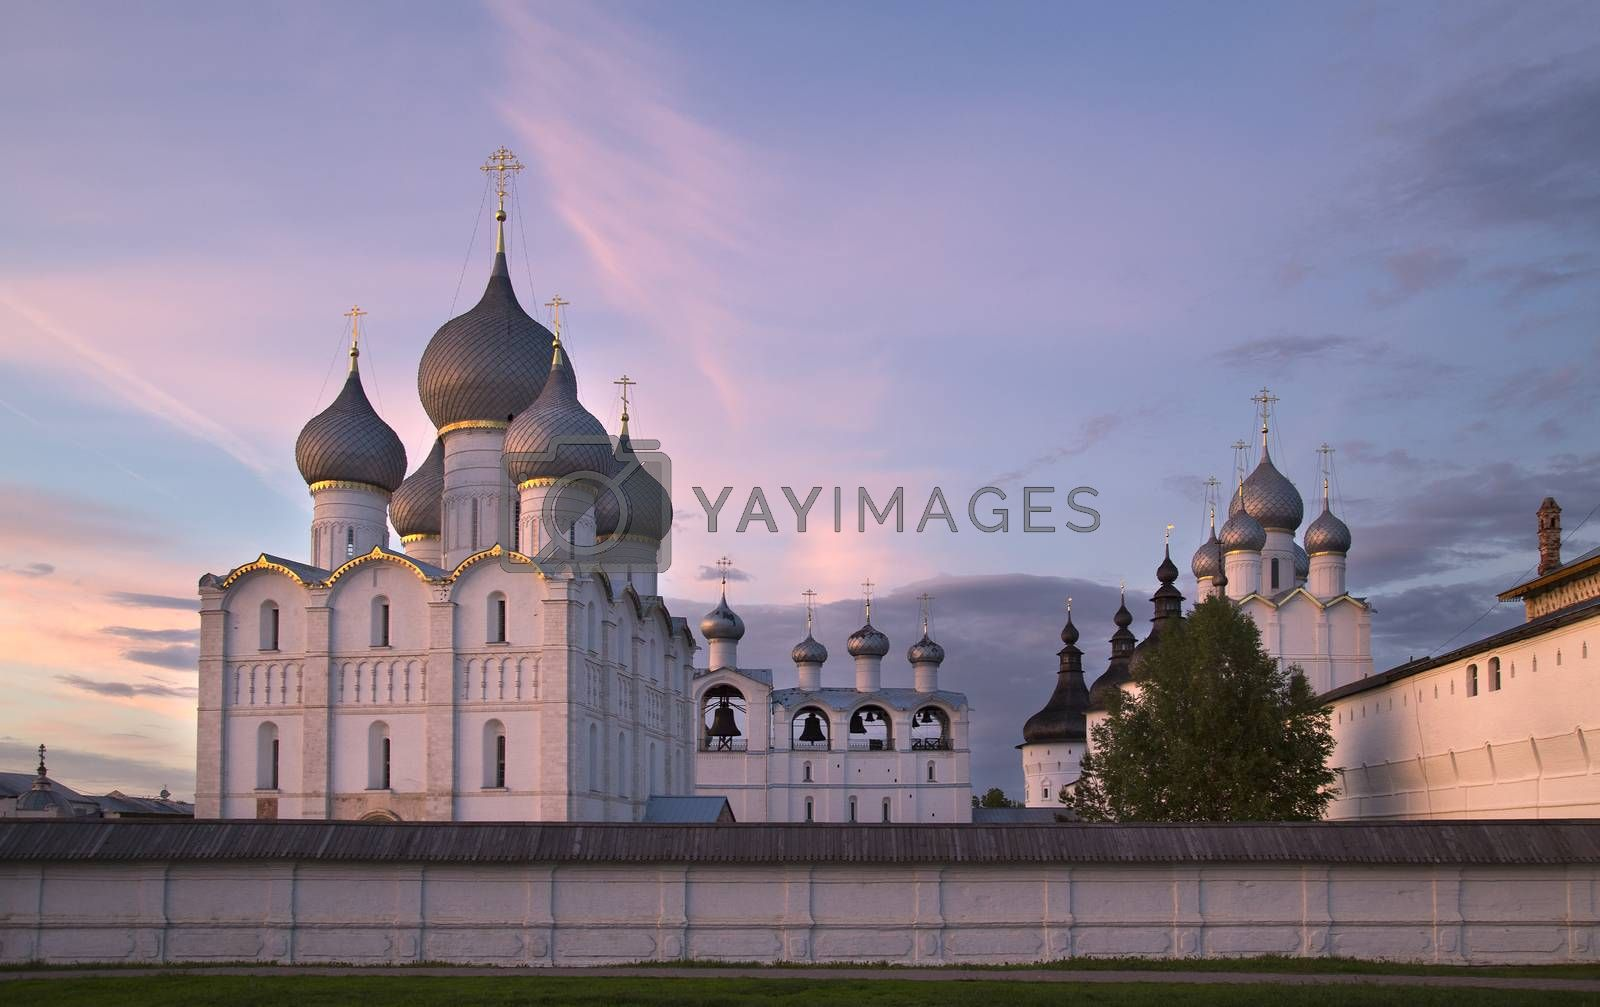 Royalty free image of Rostov the Great, Russia. View on old Kremlin. by phortcach